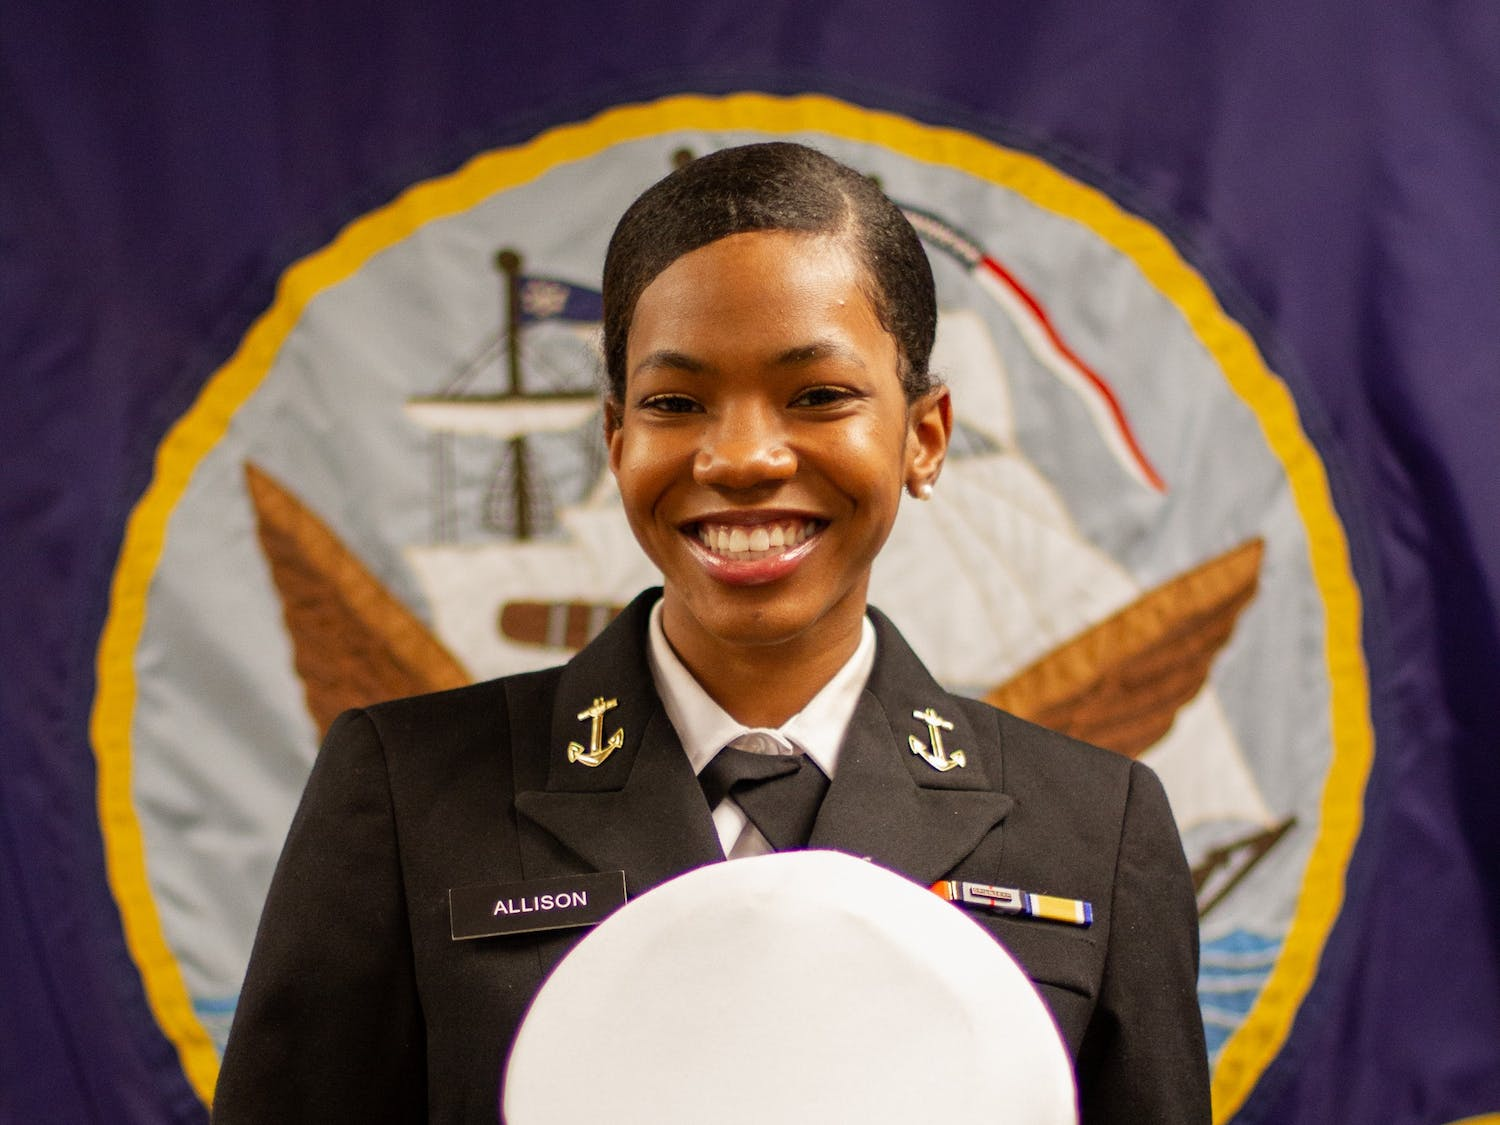 Kenya Allison poses for a portrait at the Naval Armory in Chapel Hill on Monday, Feb. 22, 2021 with her NROTC cap. Allison is the first Black female Battalion Commanding Officer for NROTC.